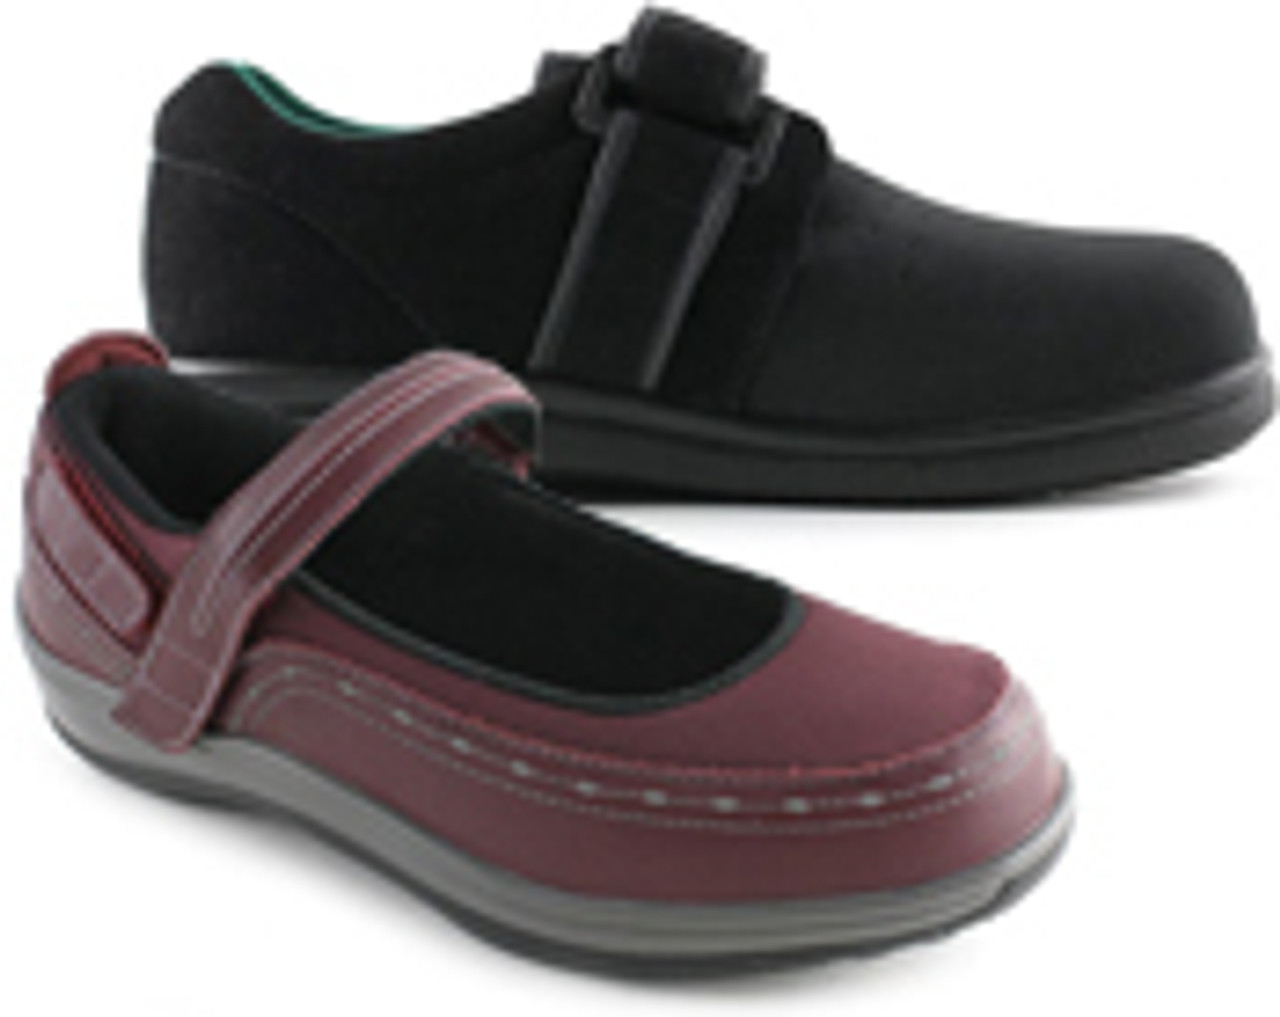 Stretchable Shoes | Shoes That Are Easy To Put On